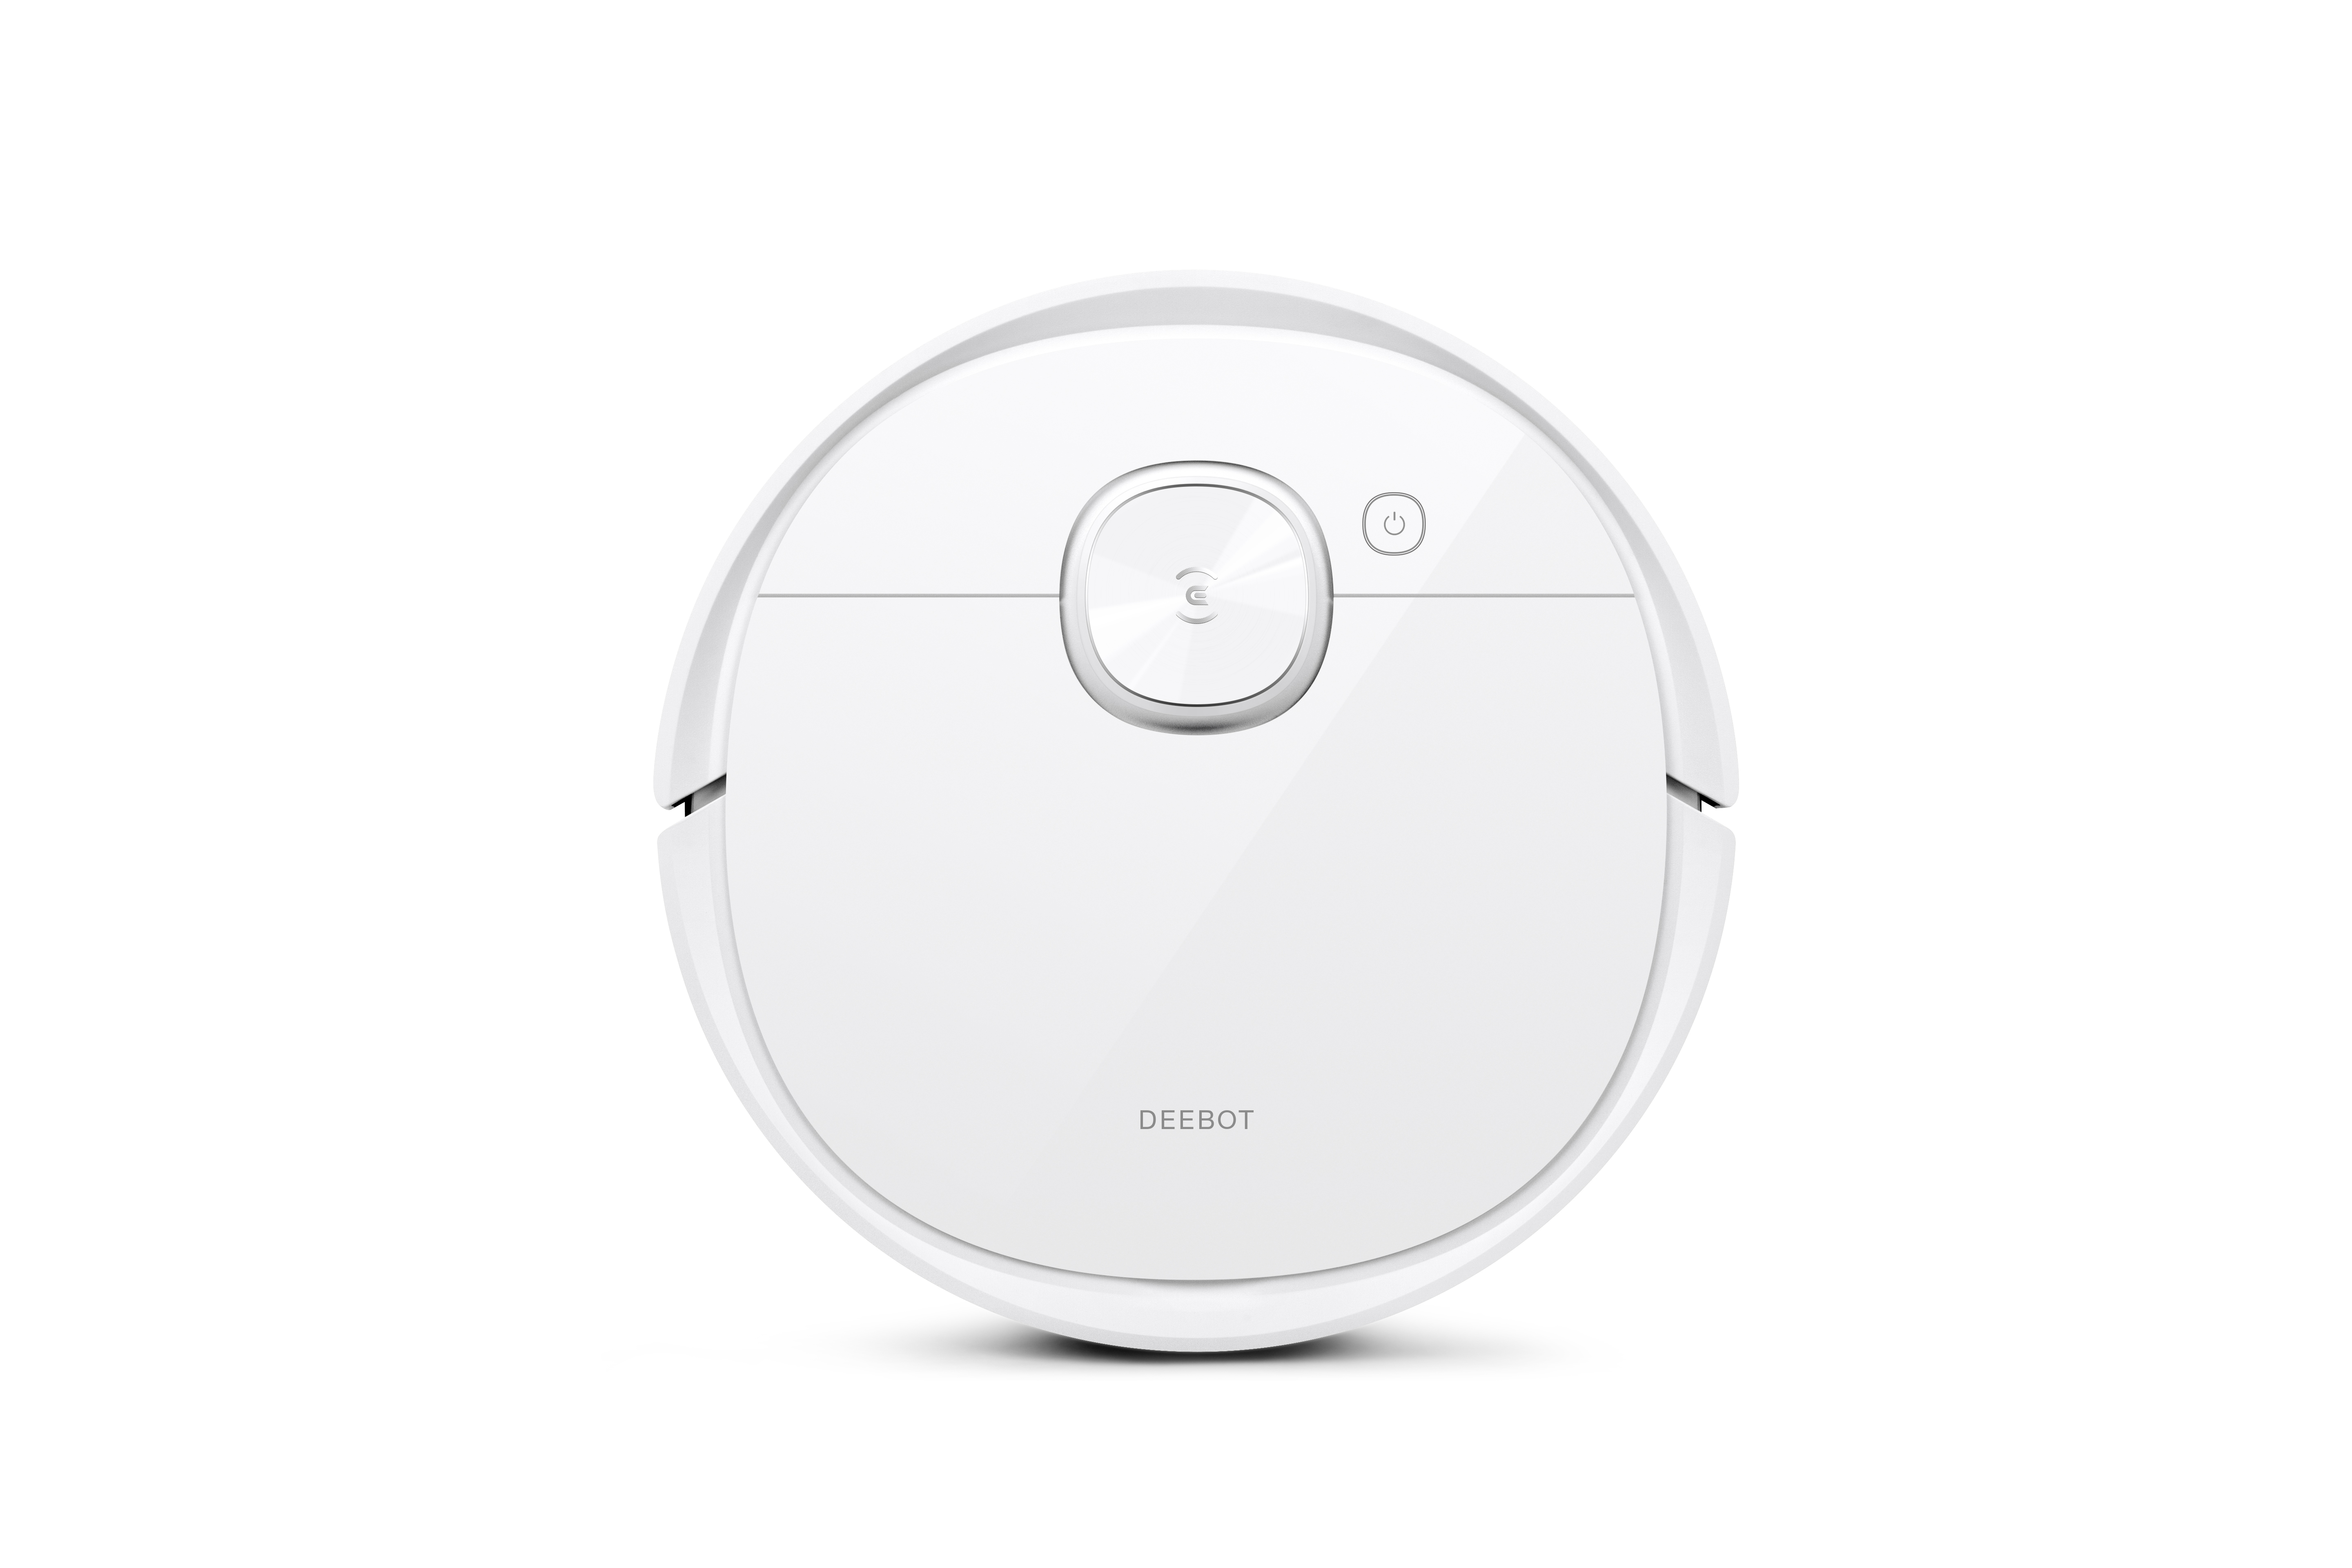 ECOVACS ROBOTICS Introduces 9-in-1 DEEBOT T9 In Malaysia - Our Best DEEBOT Just Got Better